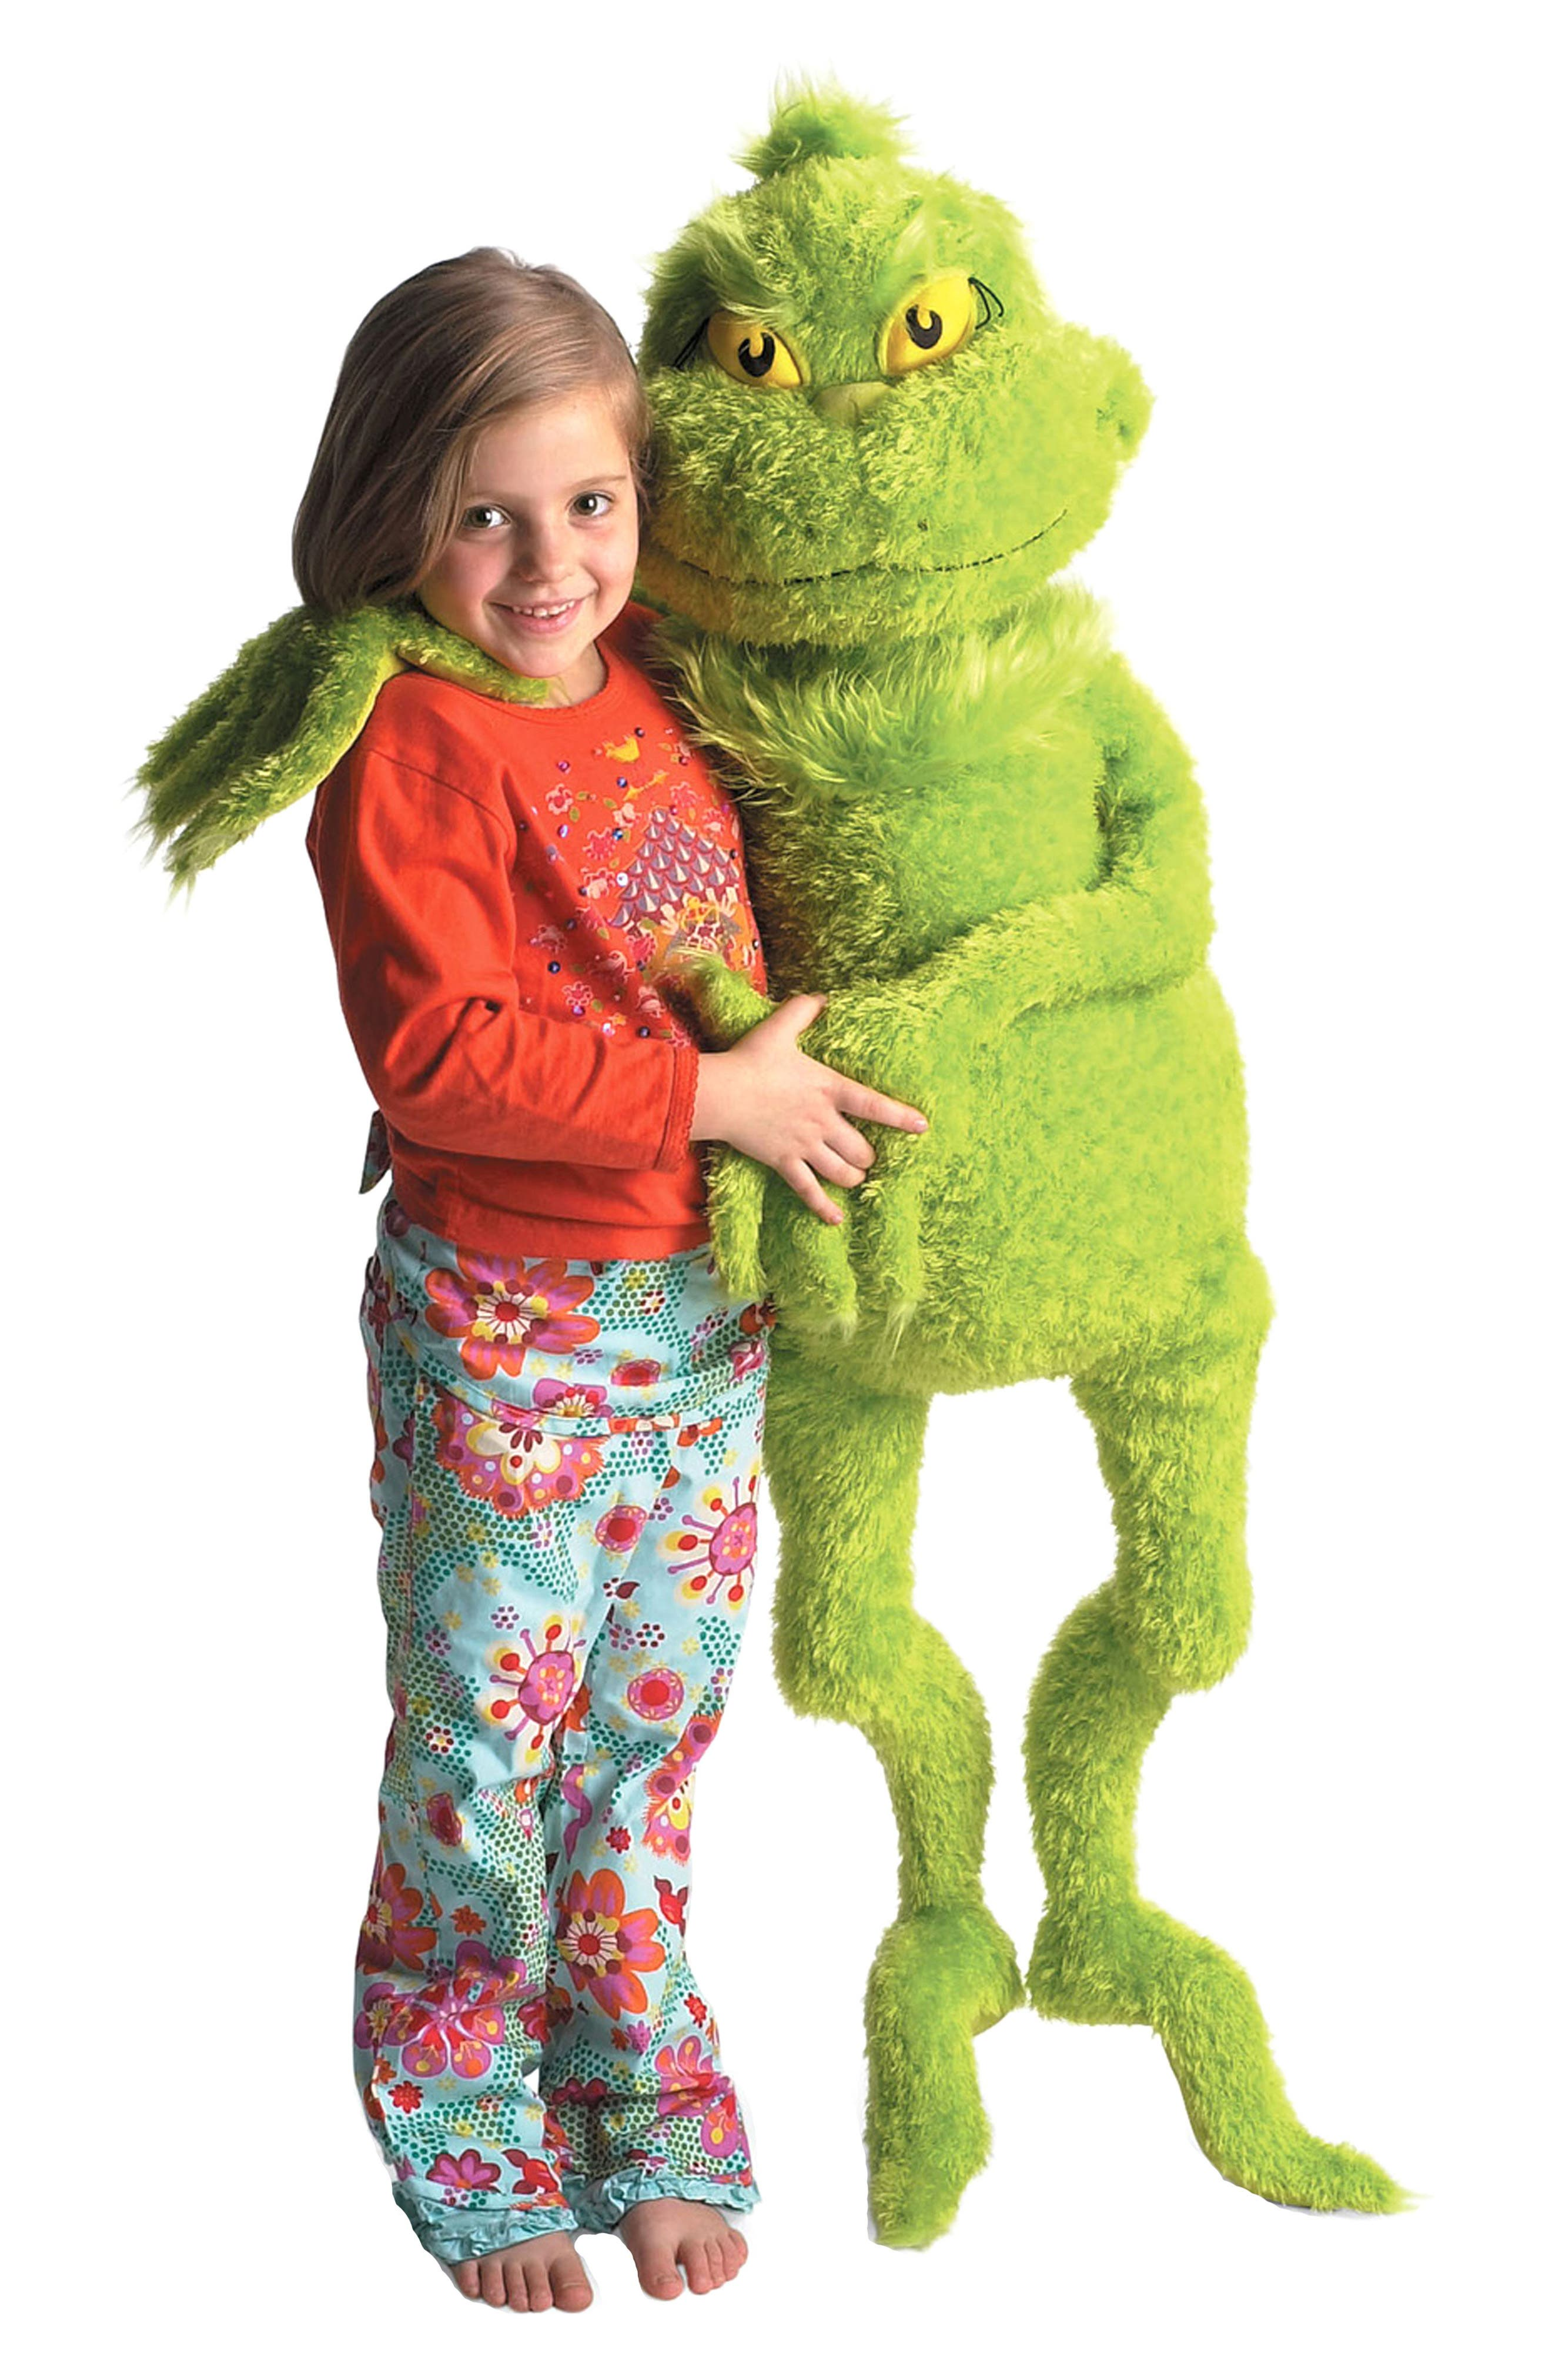 Dr. Seuss -The Grinch Stuffed Toy,                             Alternate thumbnail 2, color,                             300